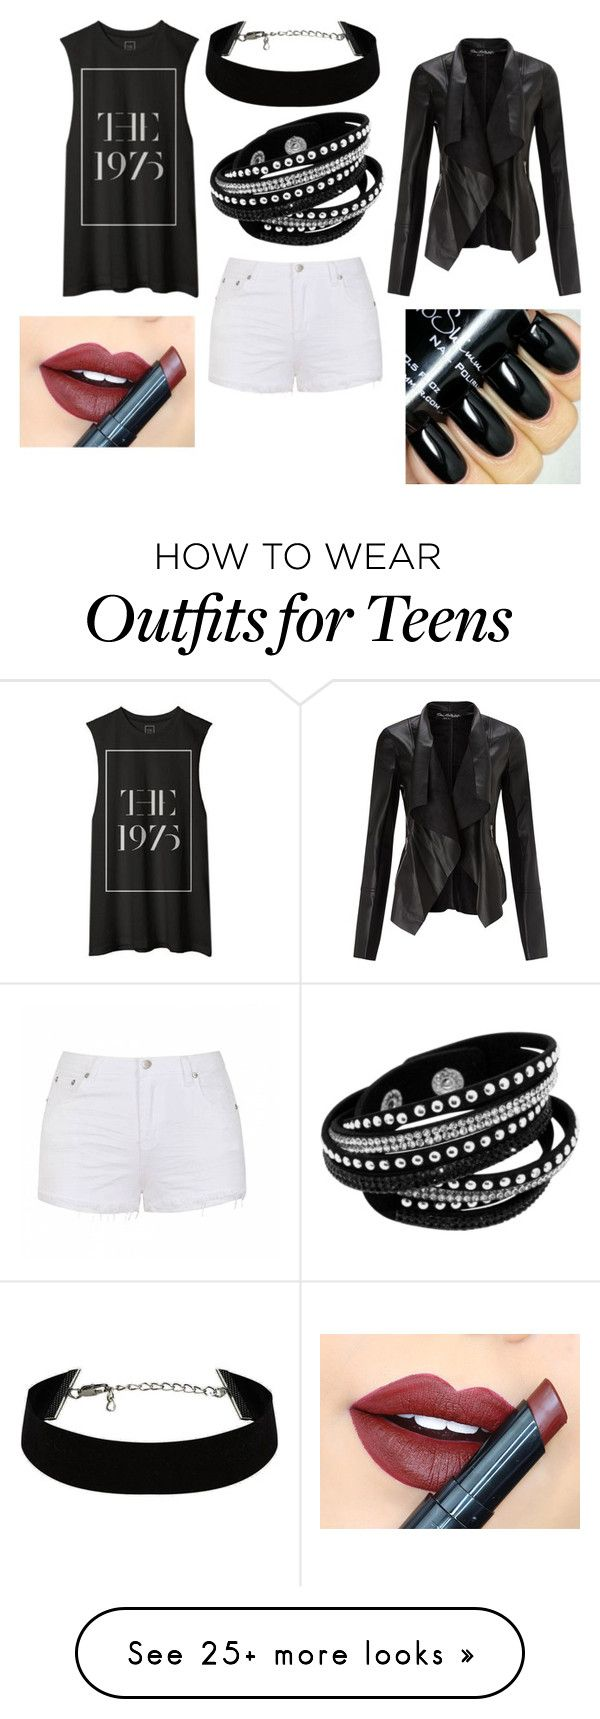 """Untitled #3"" by ashleeklien00 on Polyvore featuring Ally Fashion, Miss Selfridge, Fiebiger, women's clothing, women, female, woman, misses and juniors"